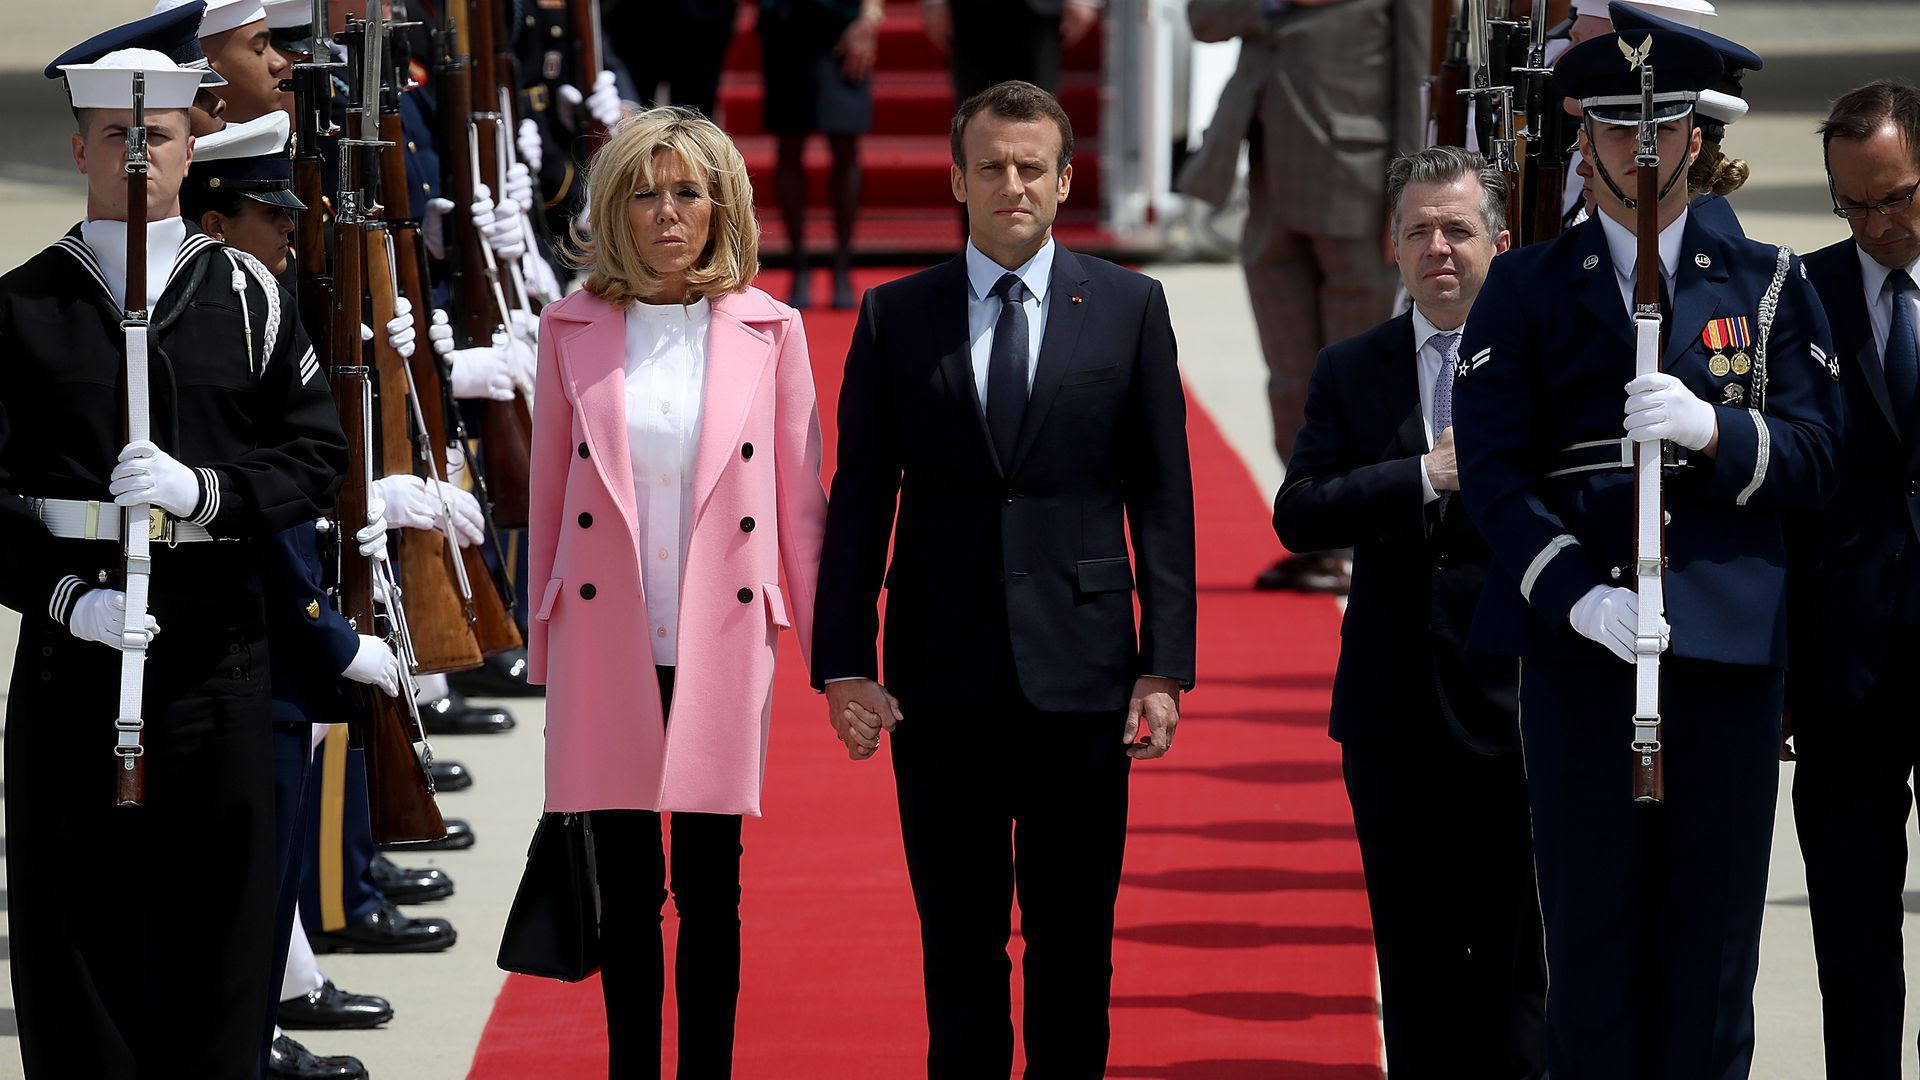 French President Emmanuel Macron and his wife Brigitte stand side by side after deplaning